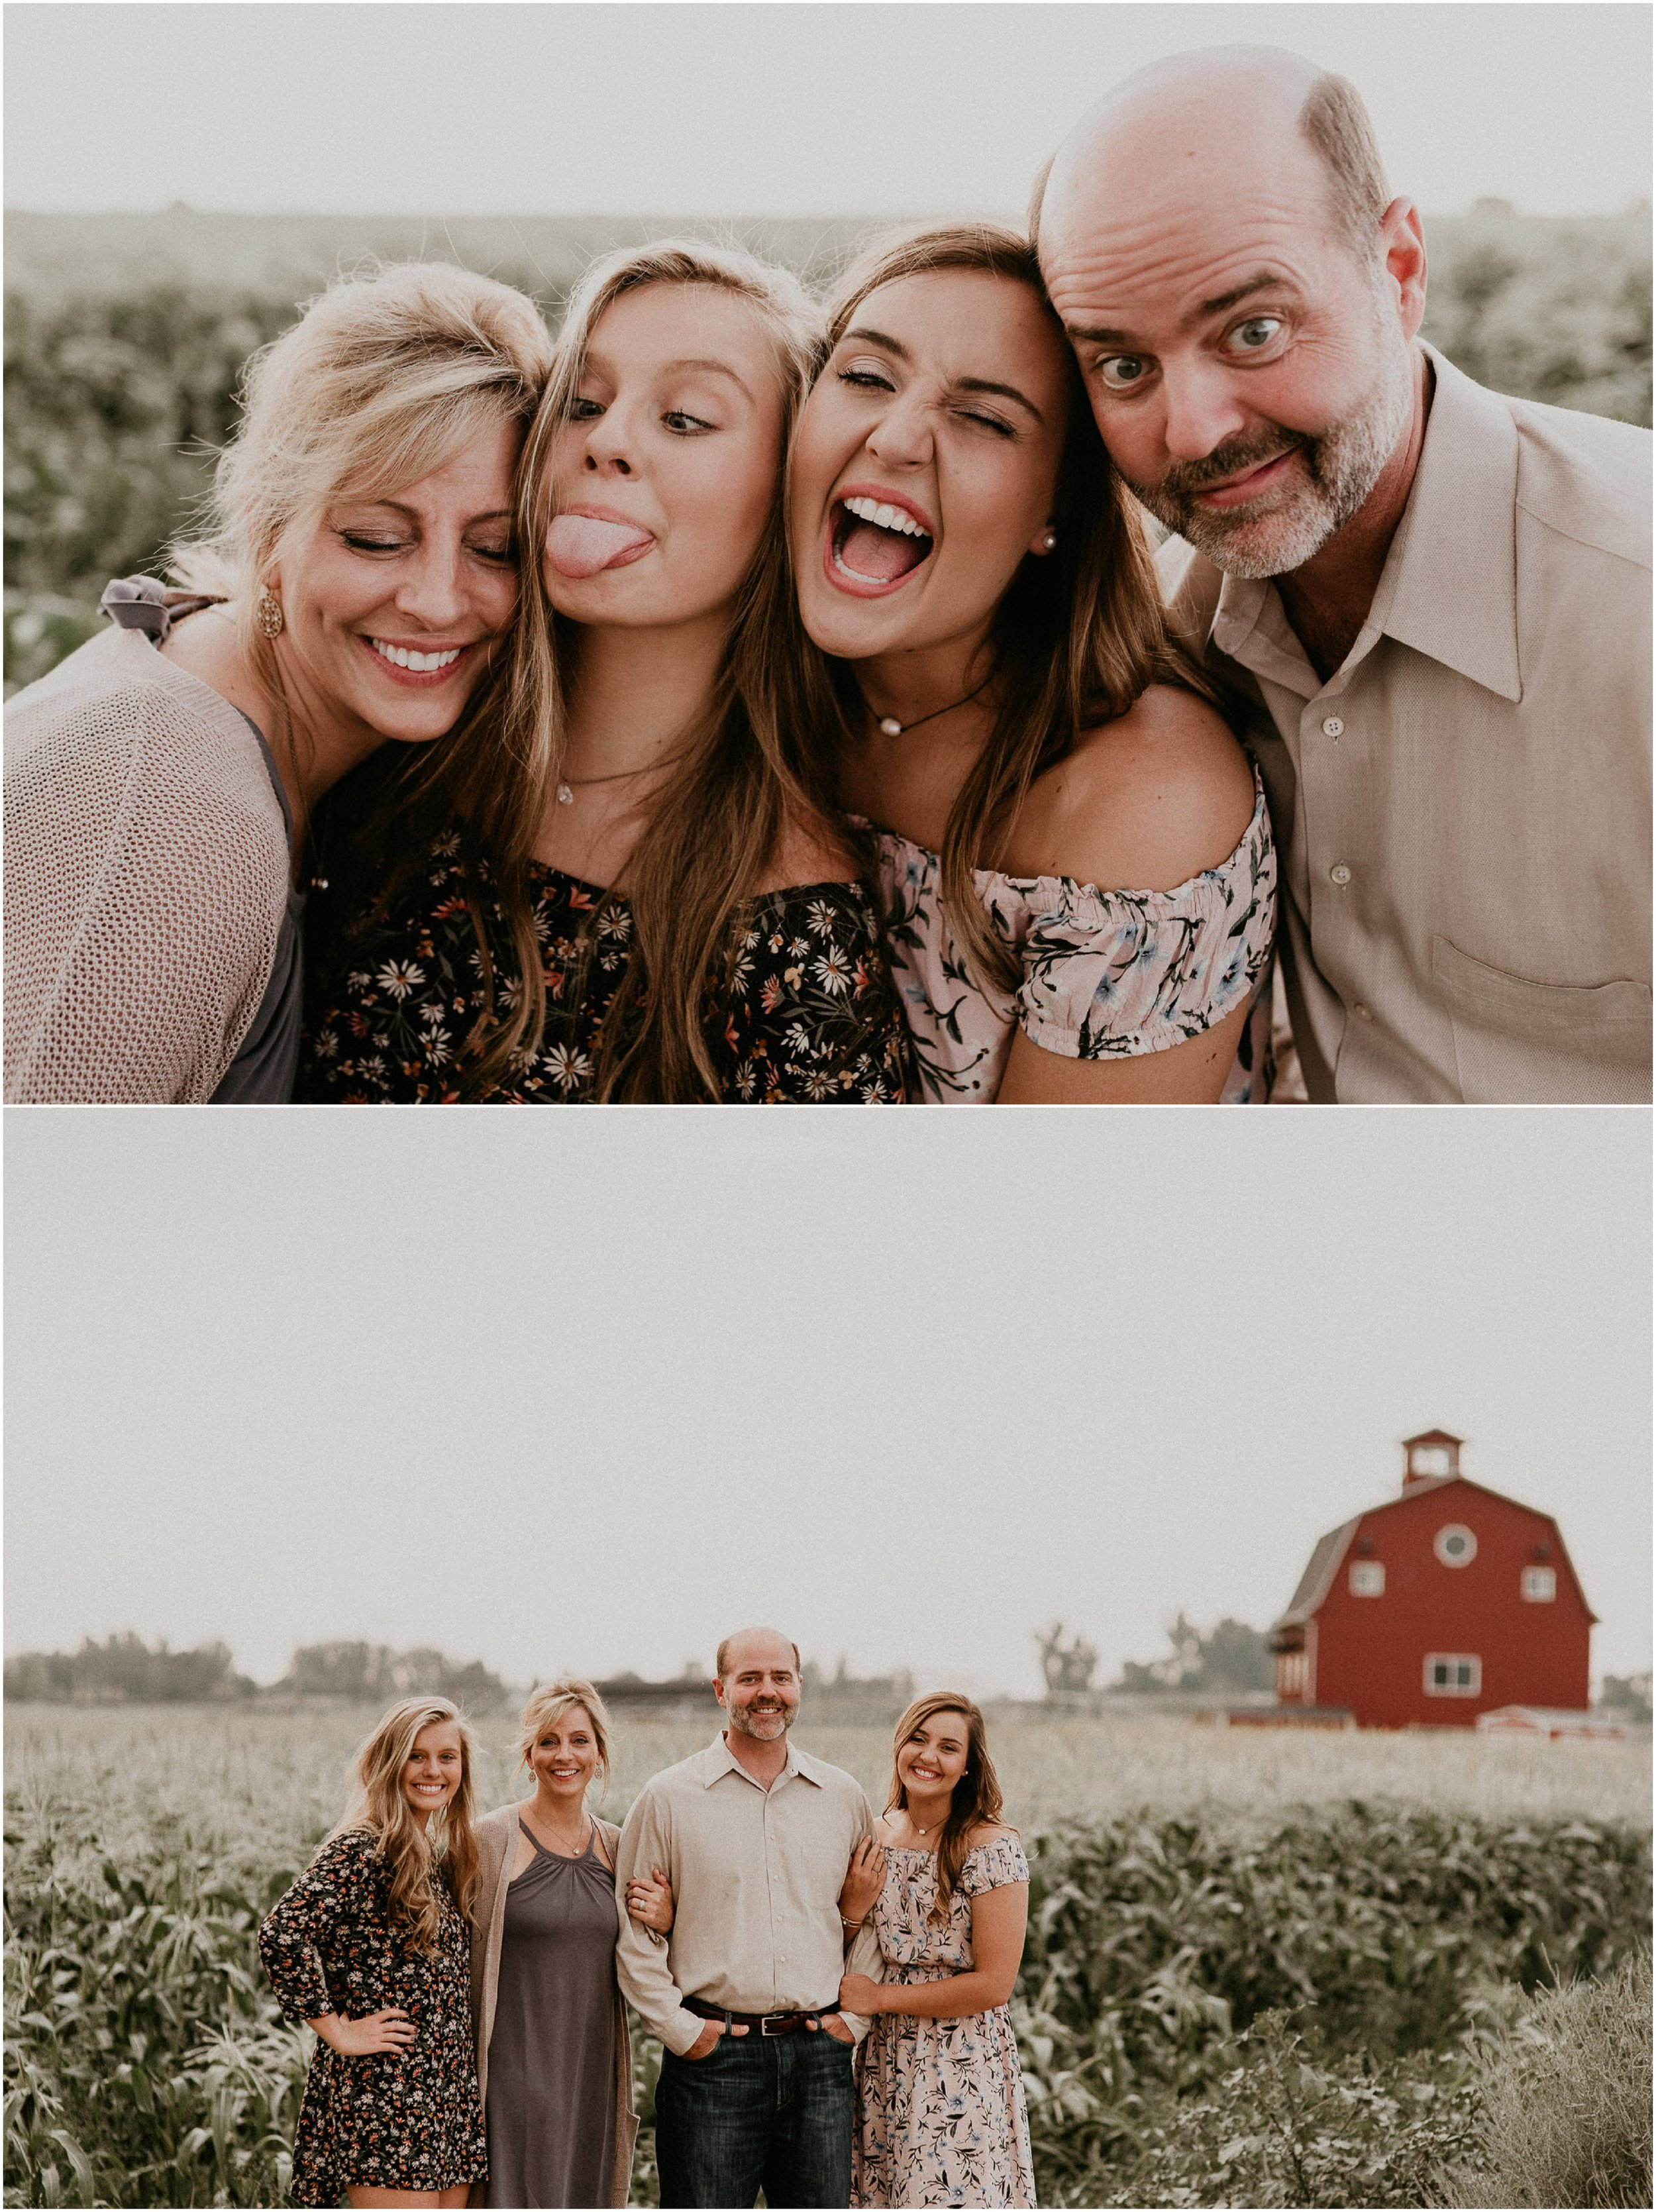 Boise Senior Photographer Idaho Summer Family Pictures Silly Goofy Faces Posing Cornfield Linder Farms Makayla Madden Photography